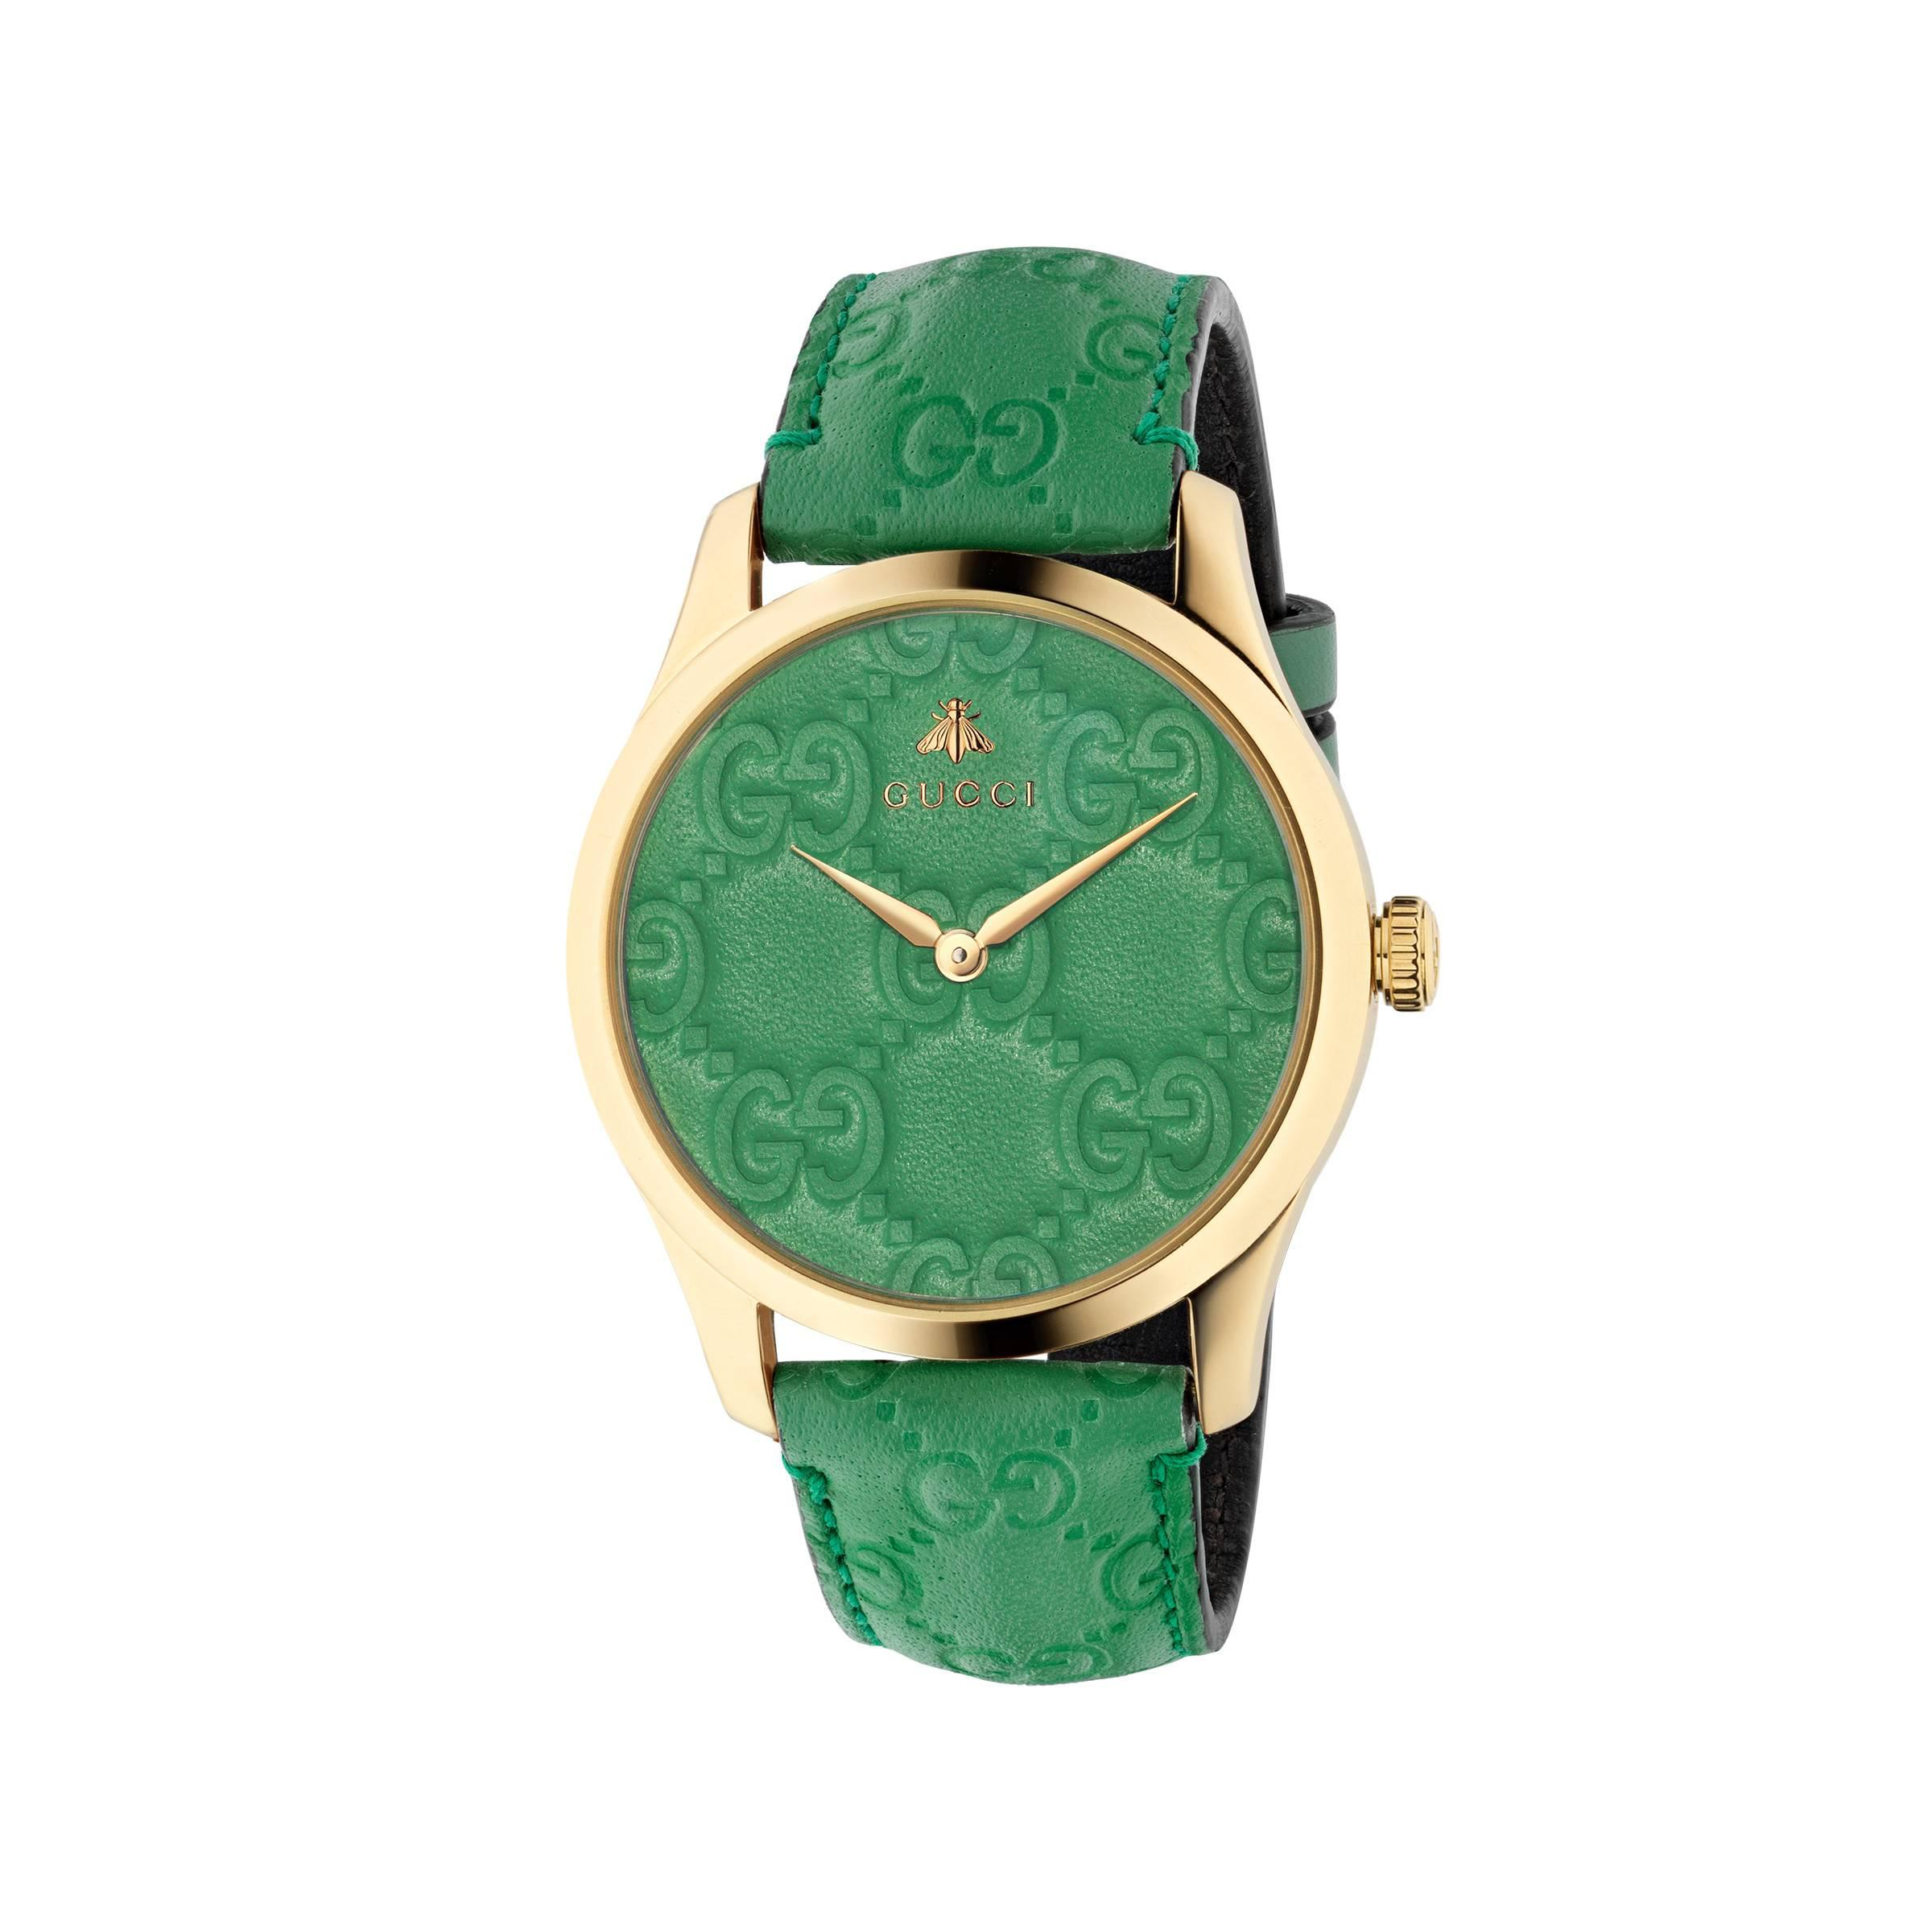 86b94715c0a Gucci - Green G-timeless Watch